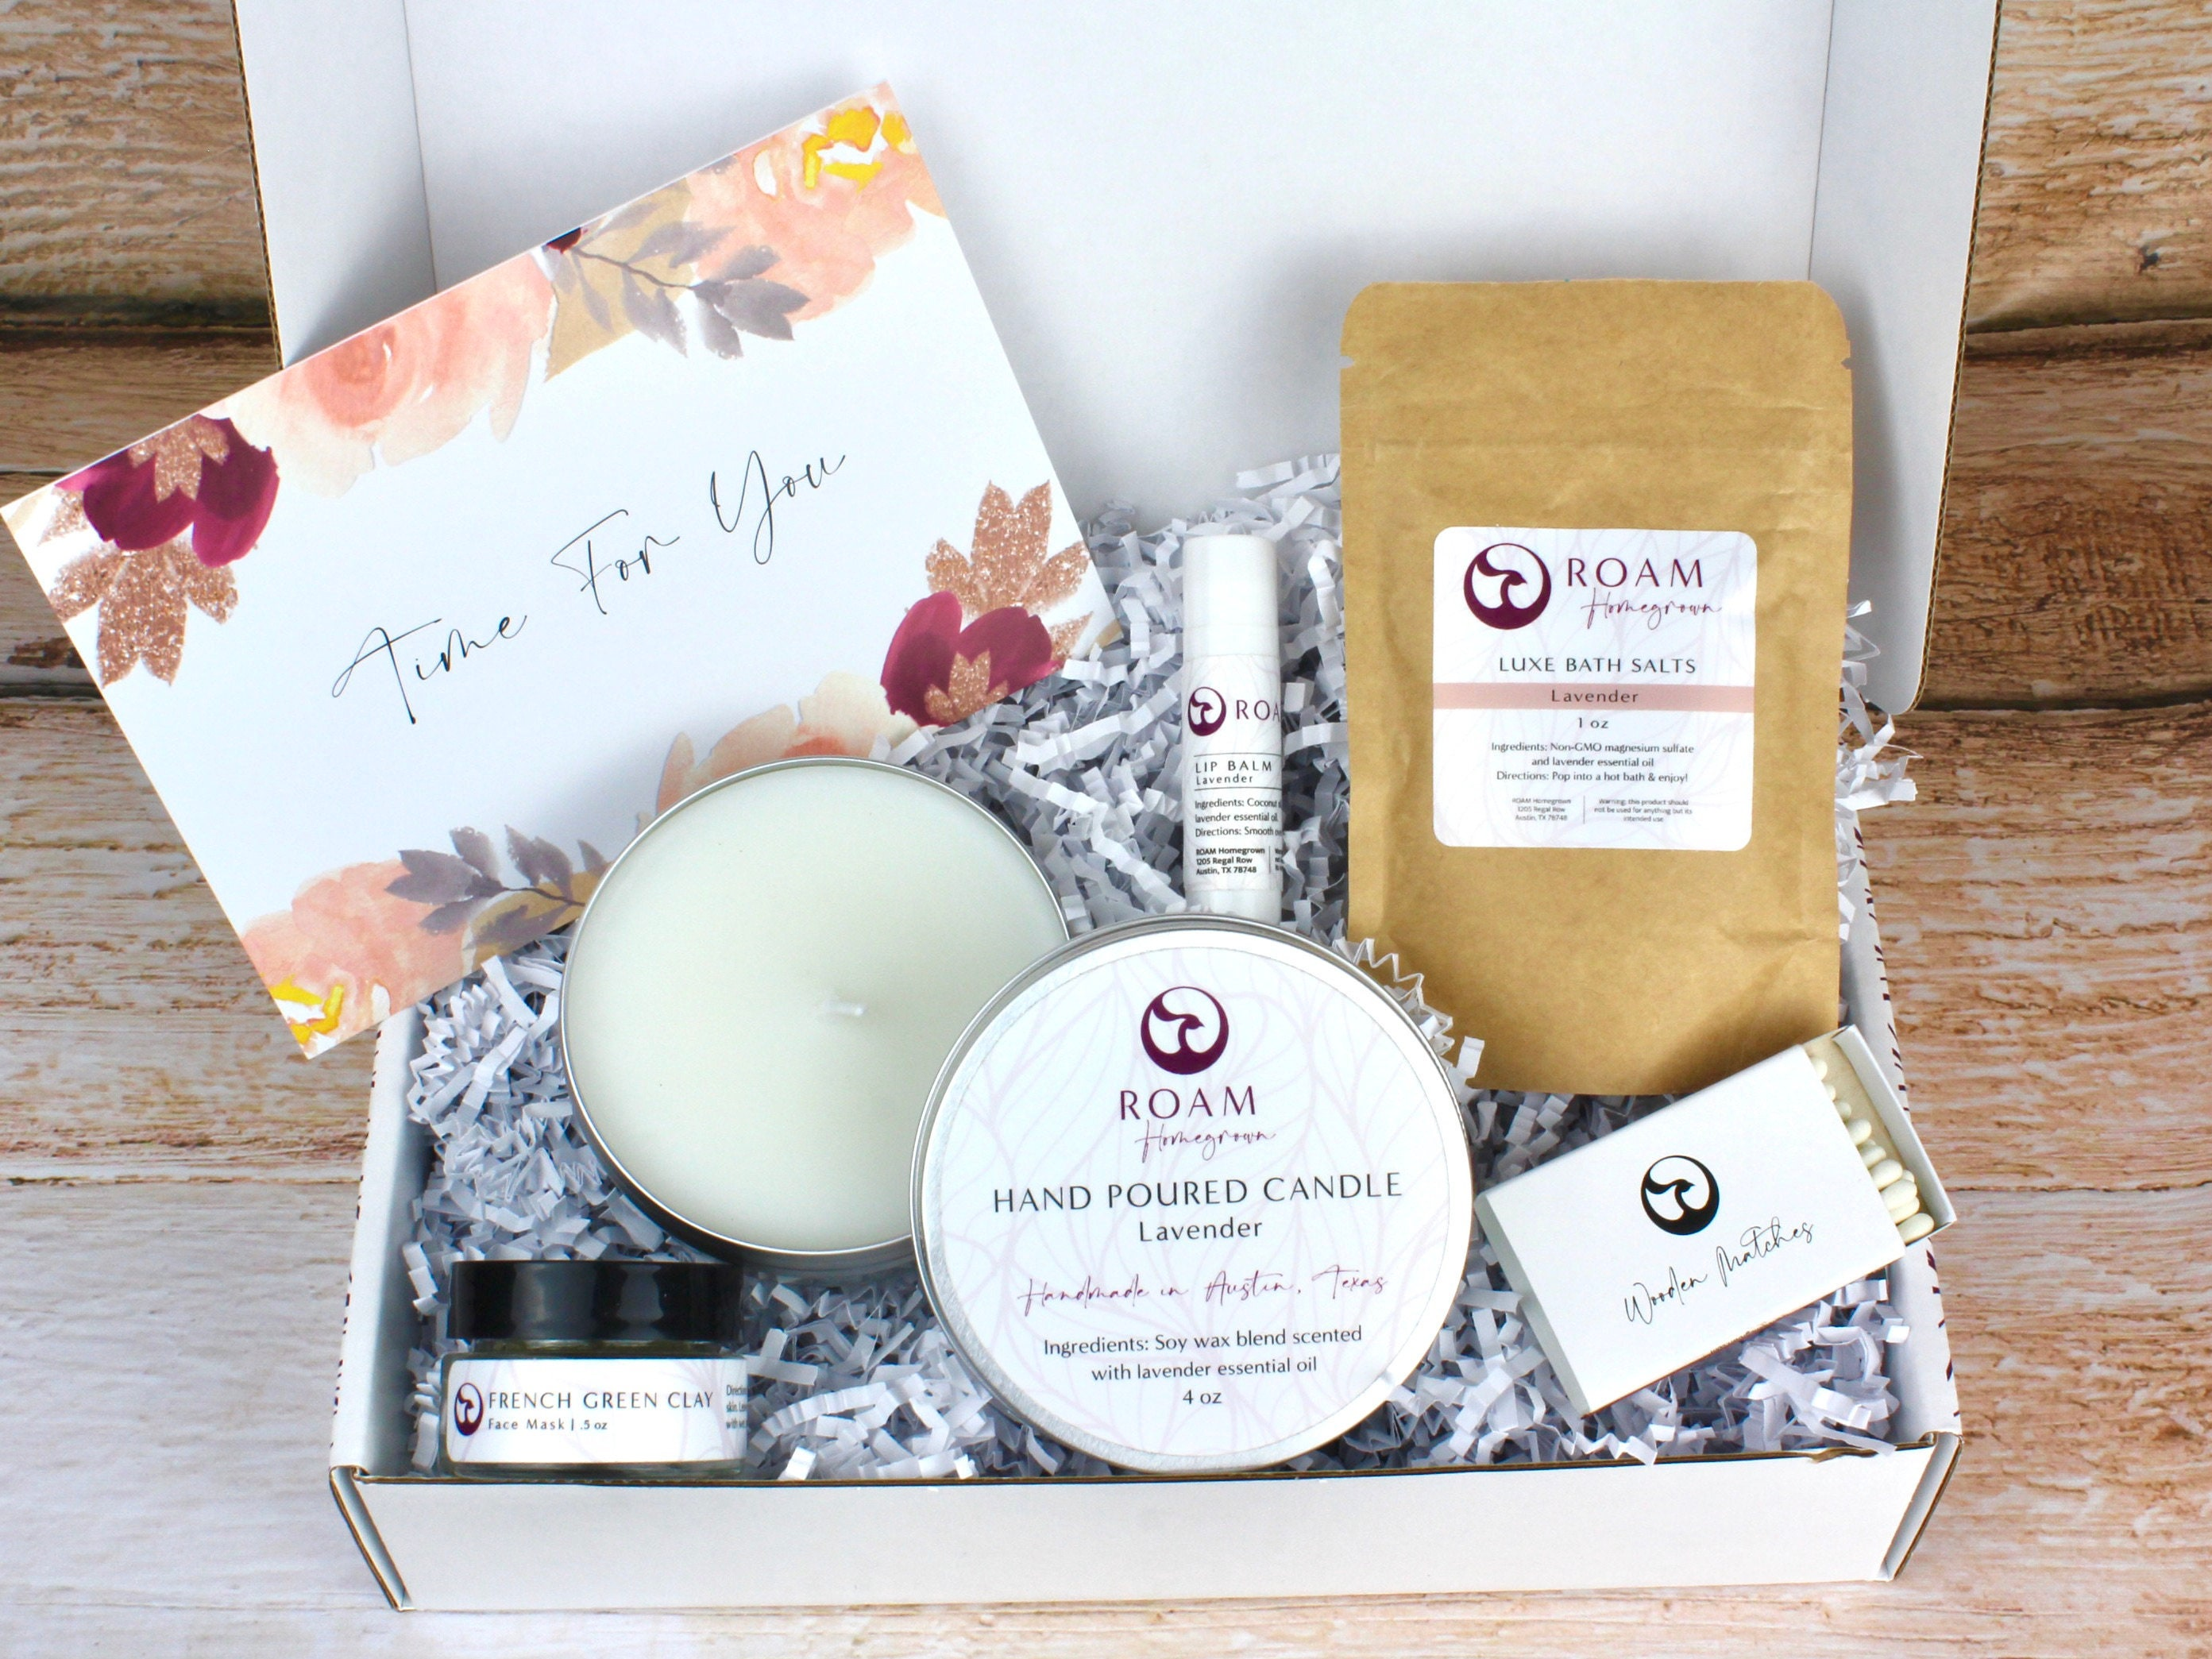 Self Care Box Gift - Set it Down. Picture by Etsy